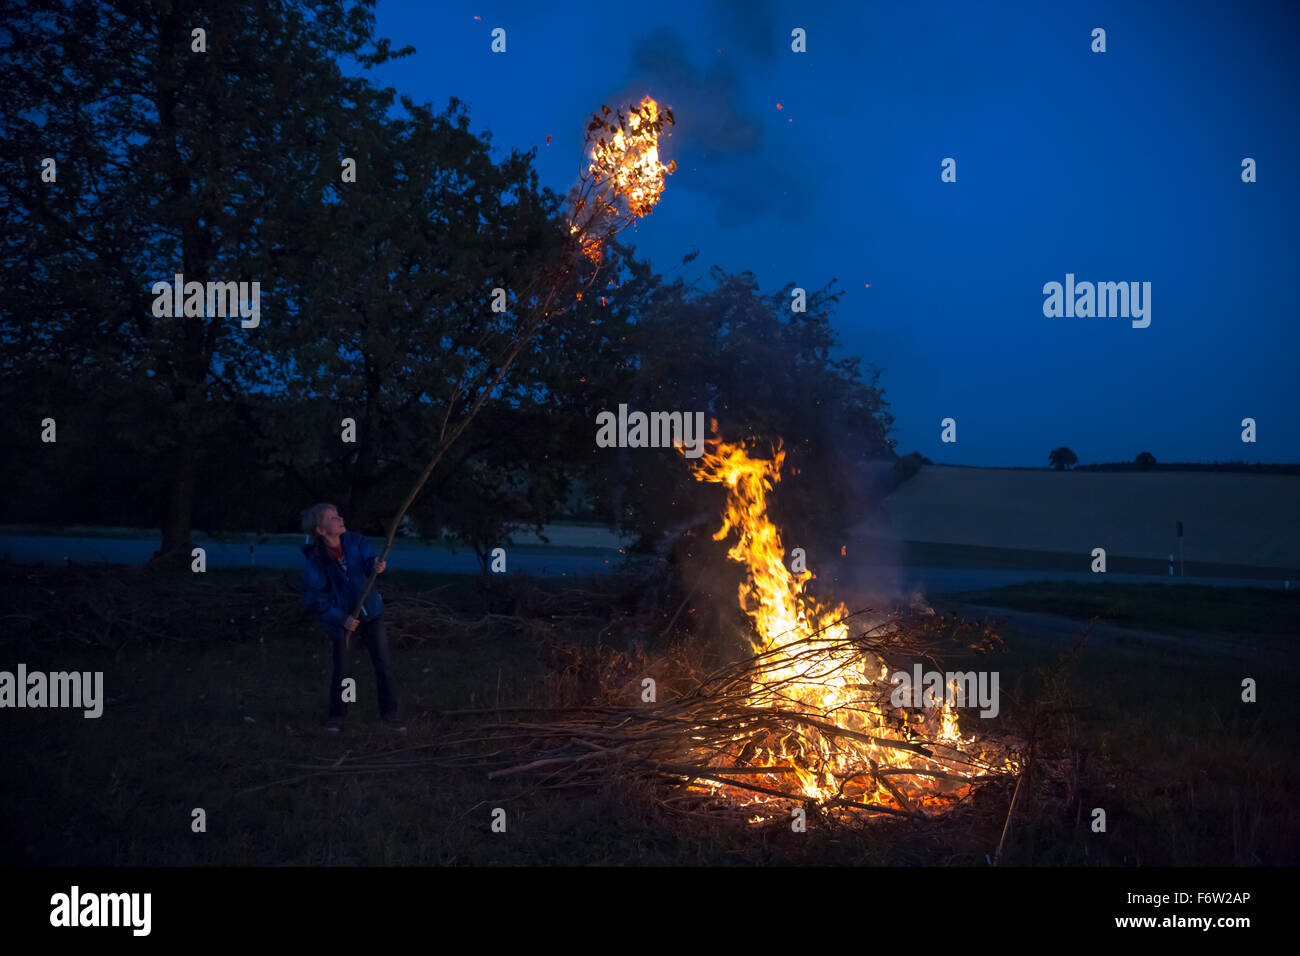 Germany, boy at camp fire on a meadow in the evening - Stock Image